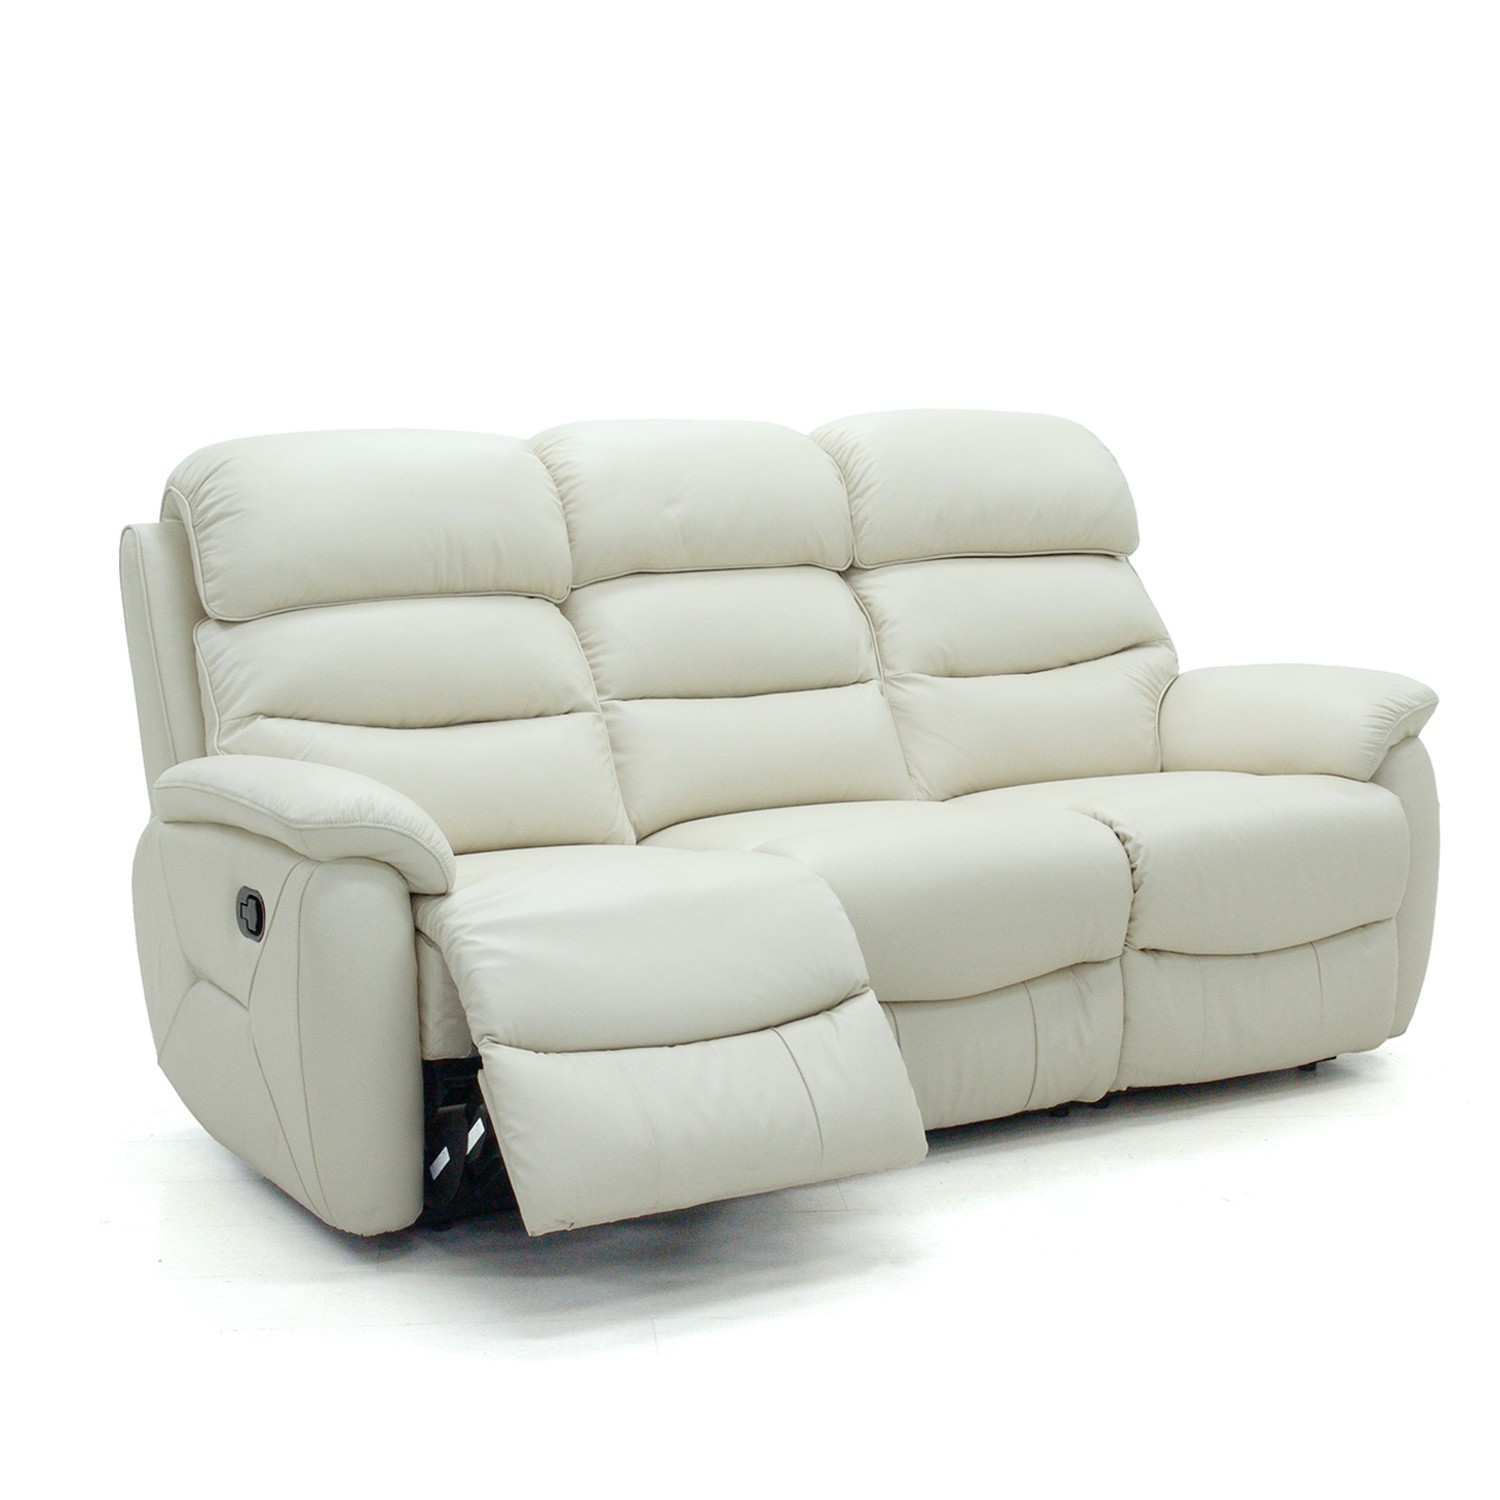 Box Type Sofa Designs: Luxury Electric Recliner Sofa Image